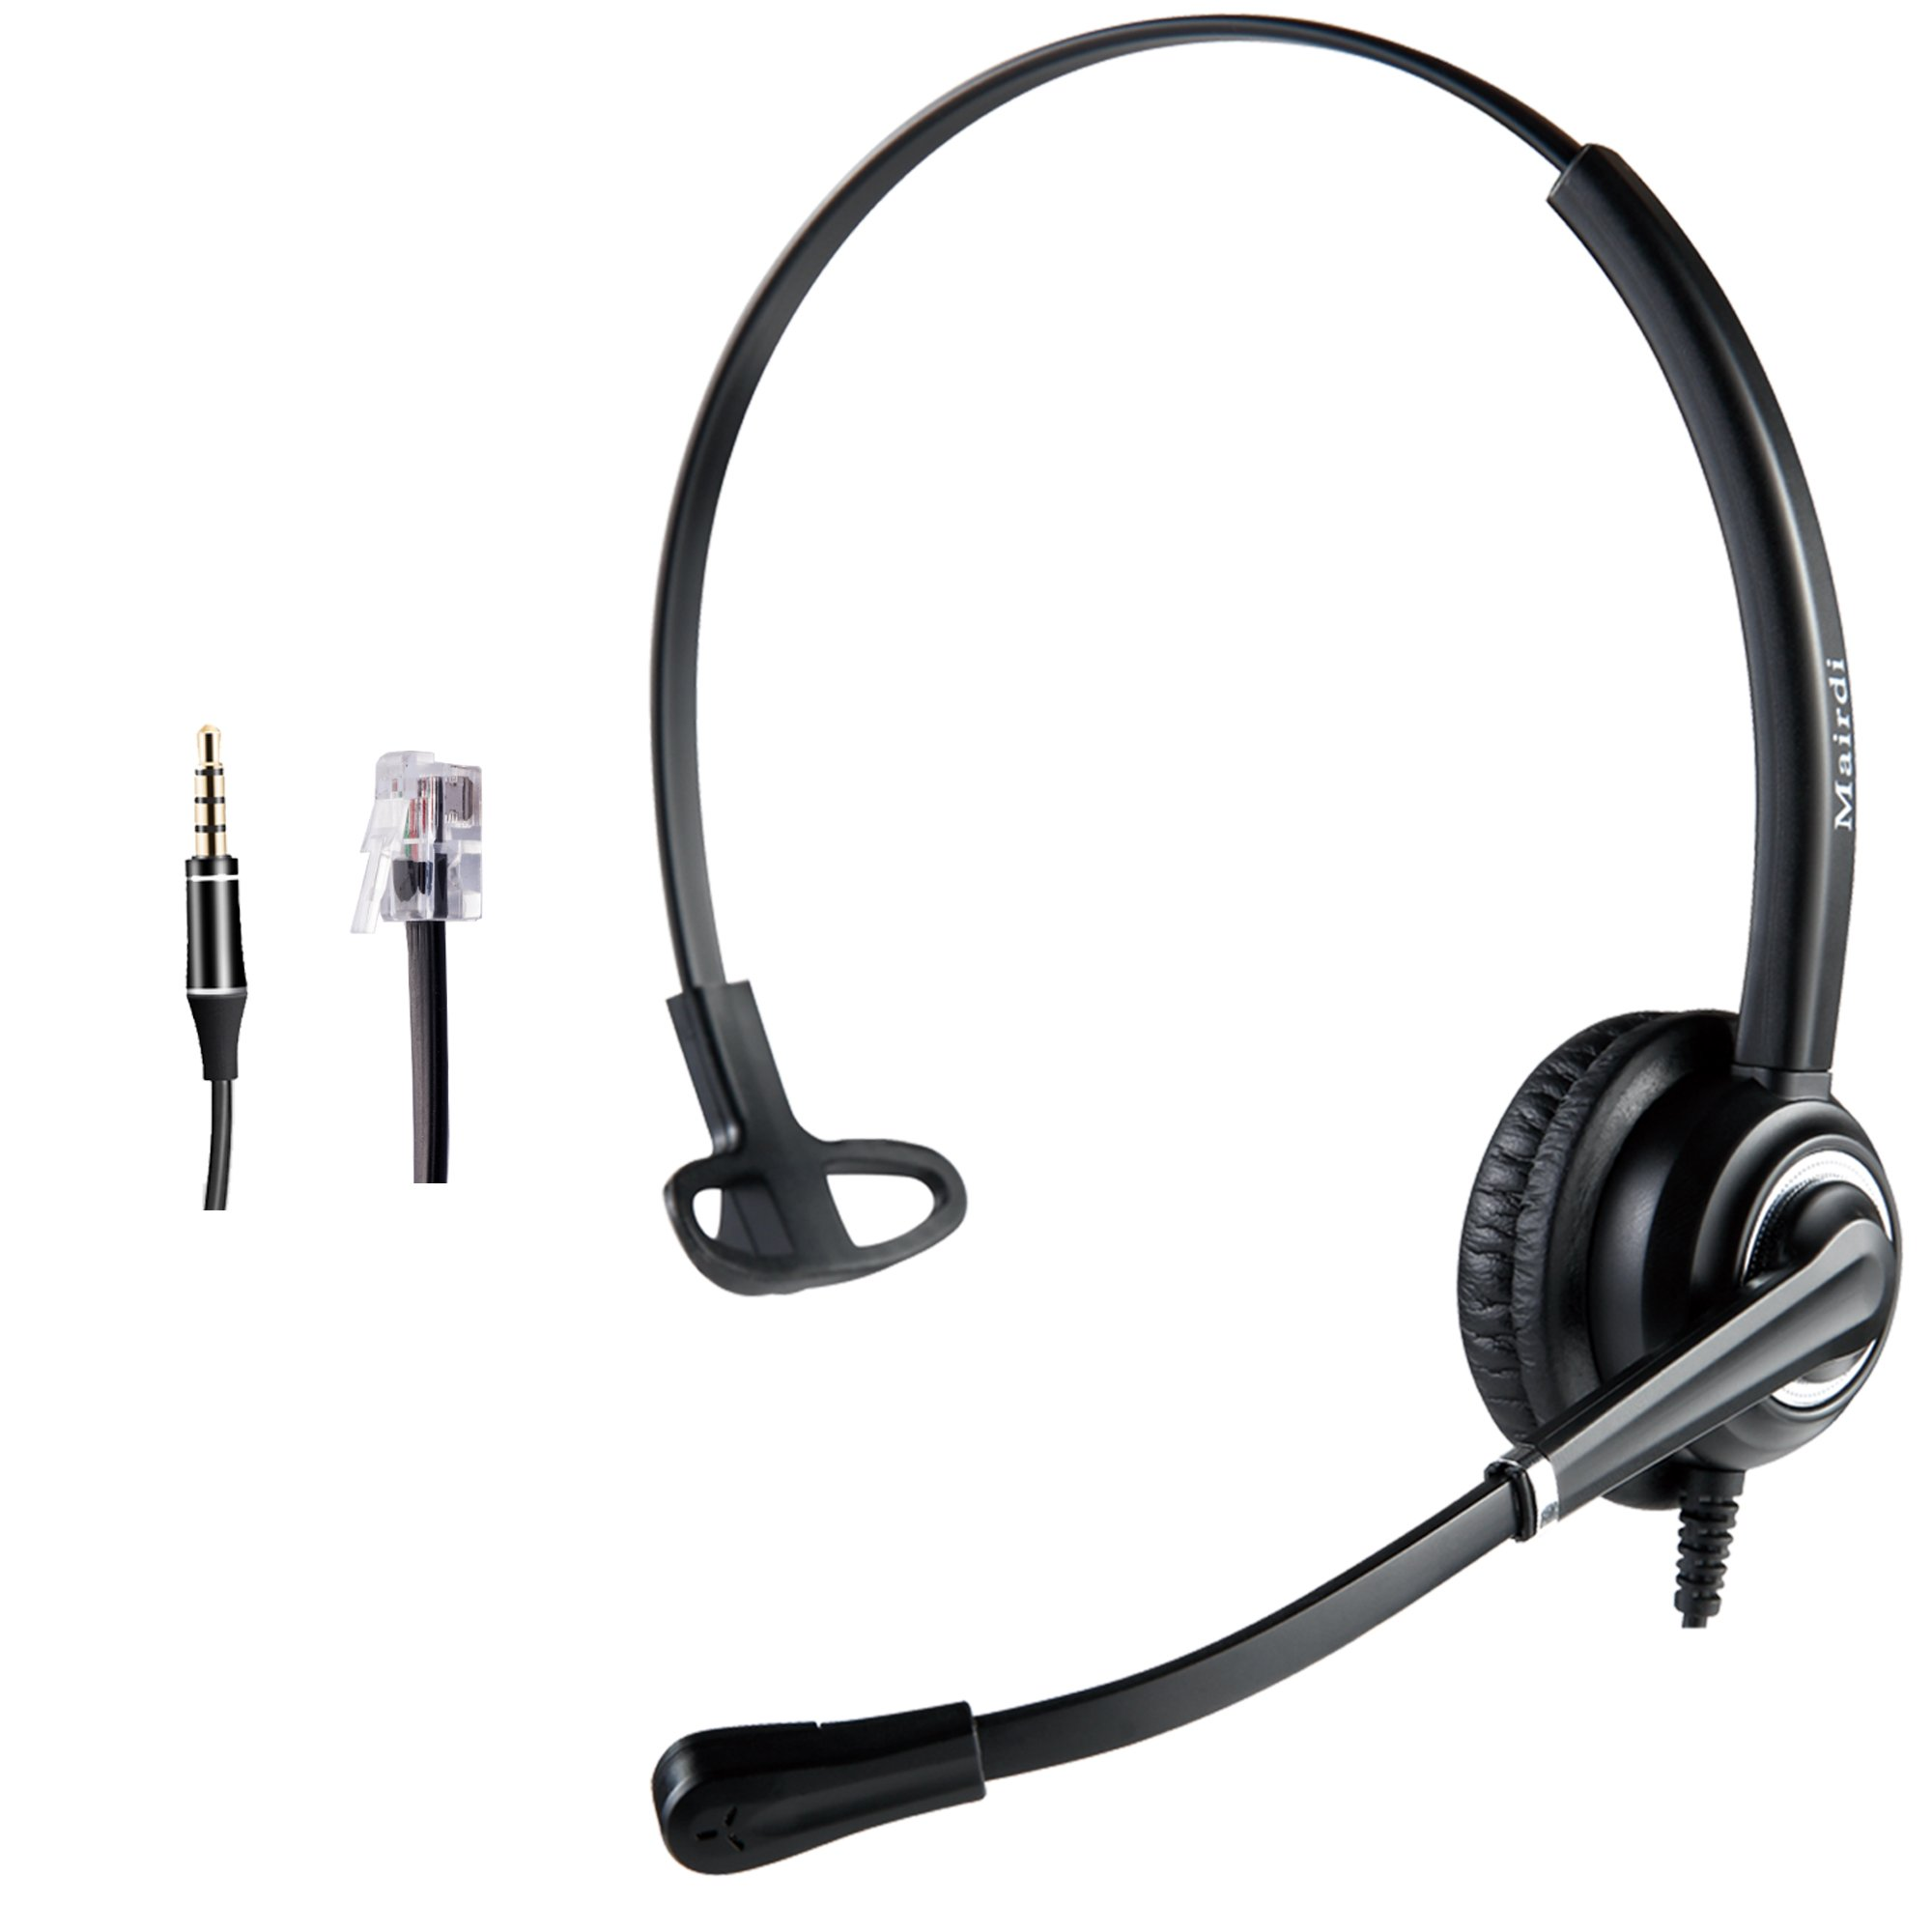 Cisco Headset Telephone Headset RJ9 with Noise Cancelling Microphone Jabra Compatible Plus Extra 3.5mm Connector